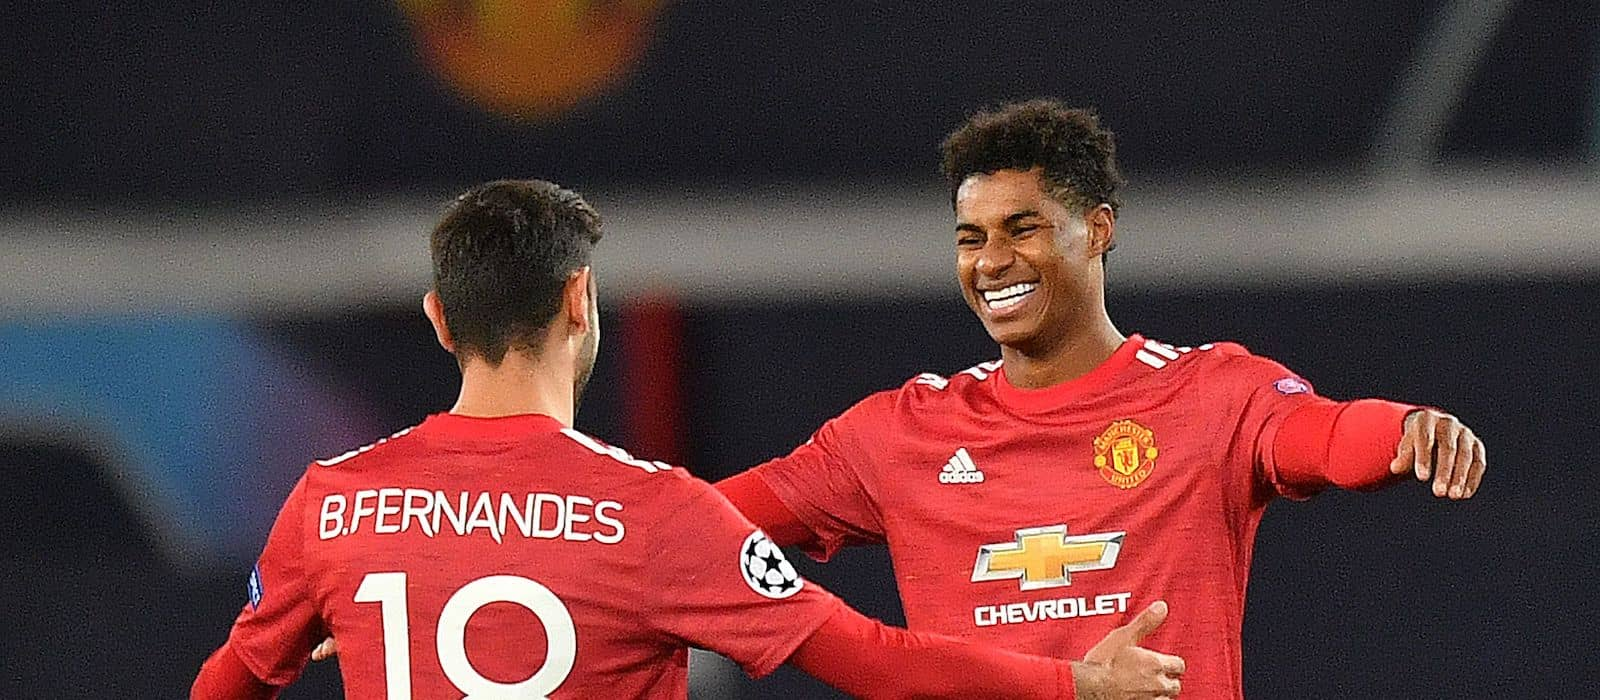 Manchester United fans in awe of Marcus Rashford's performance vs RB Leipzig